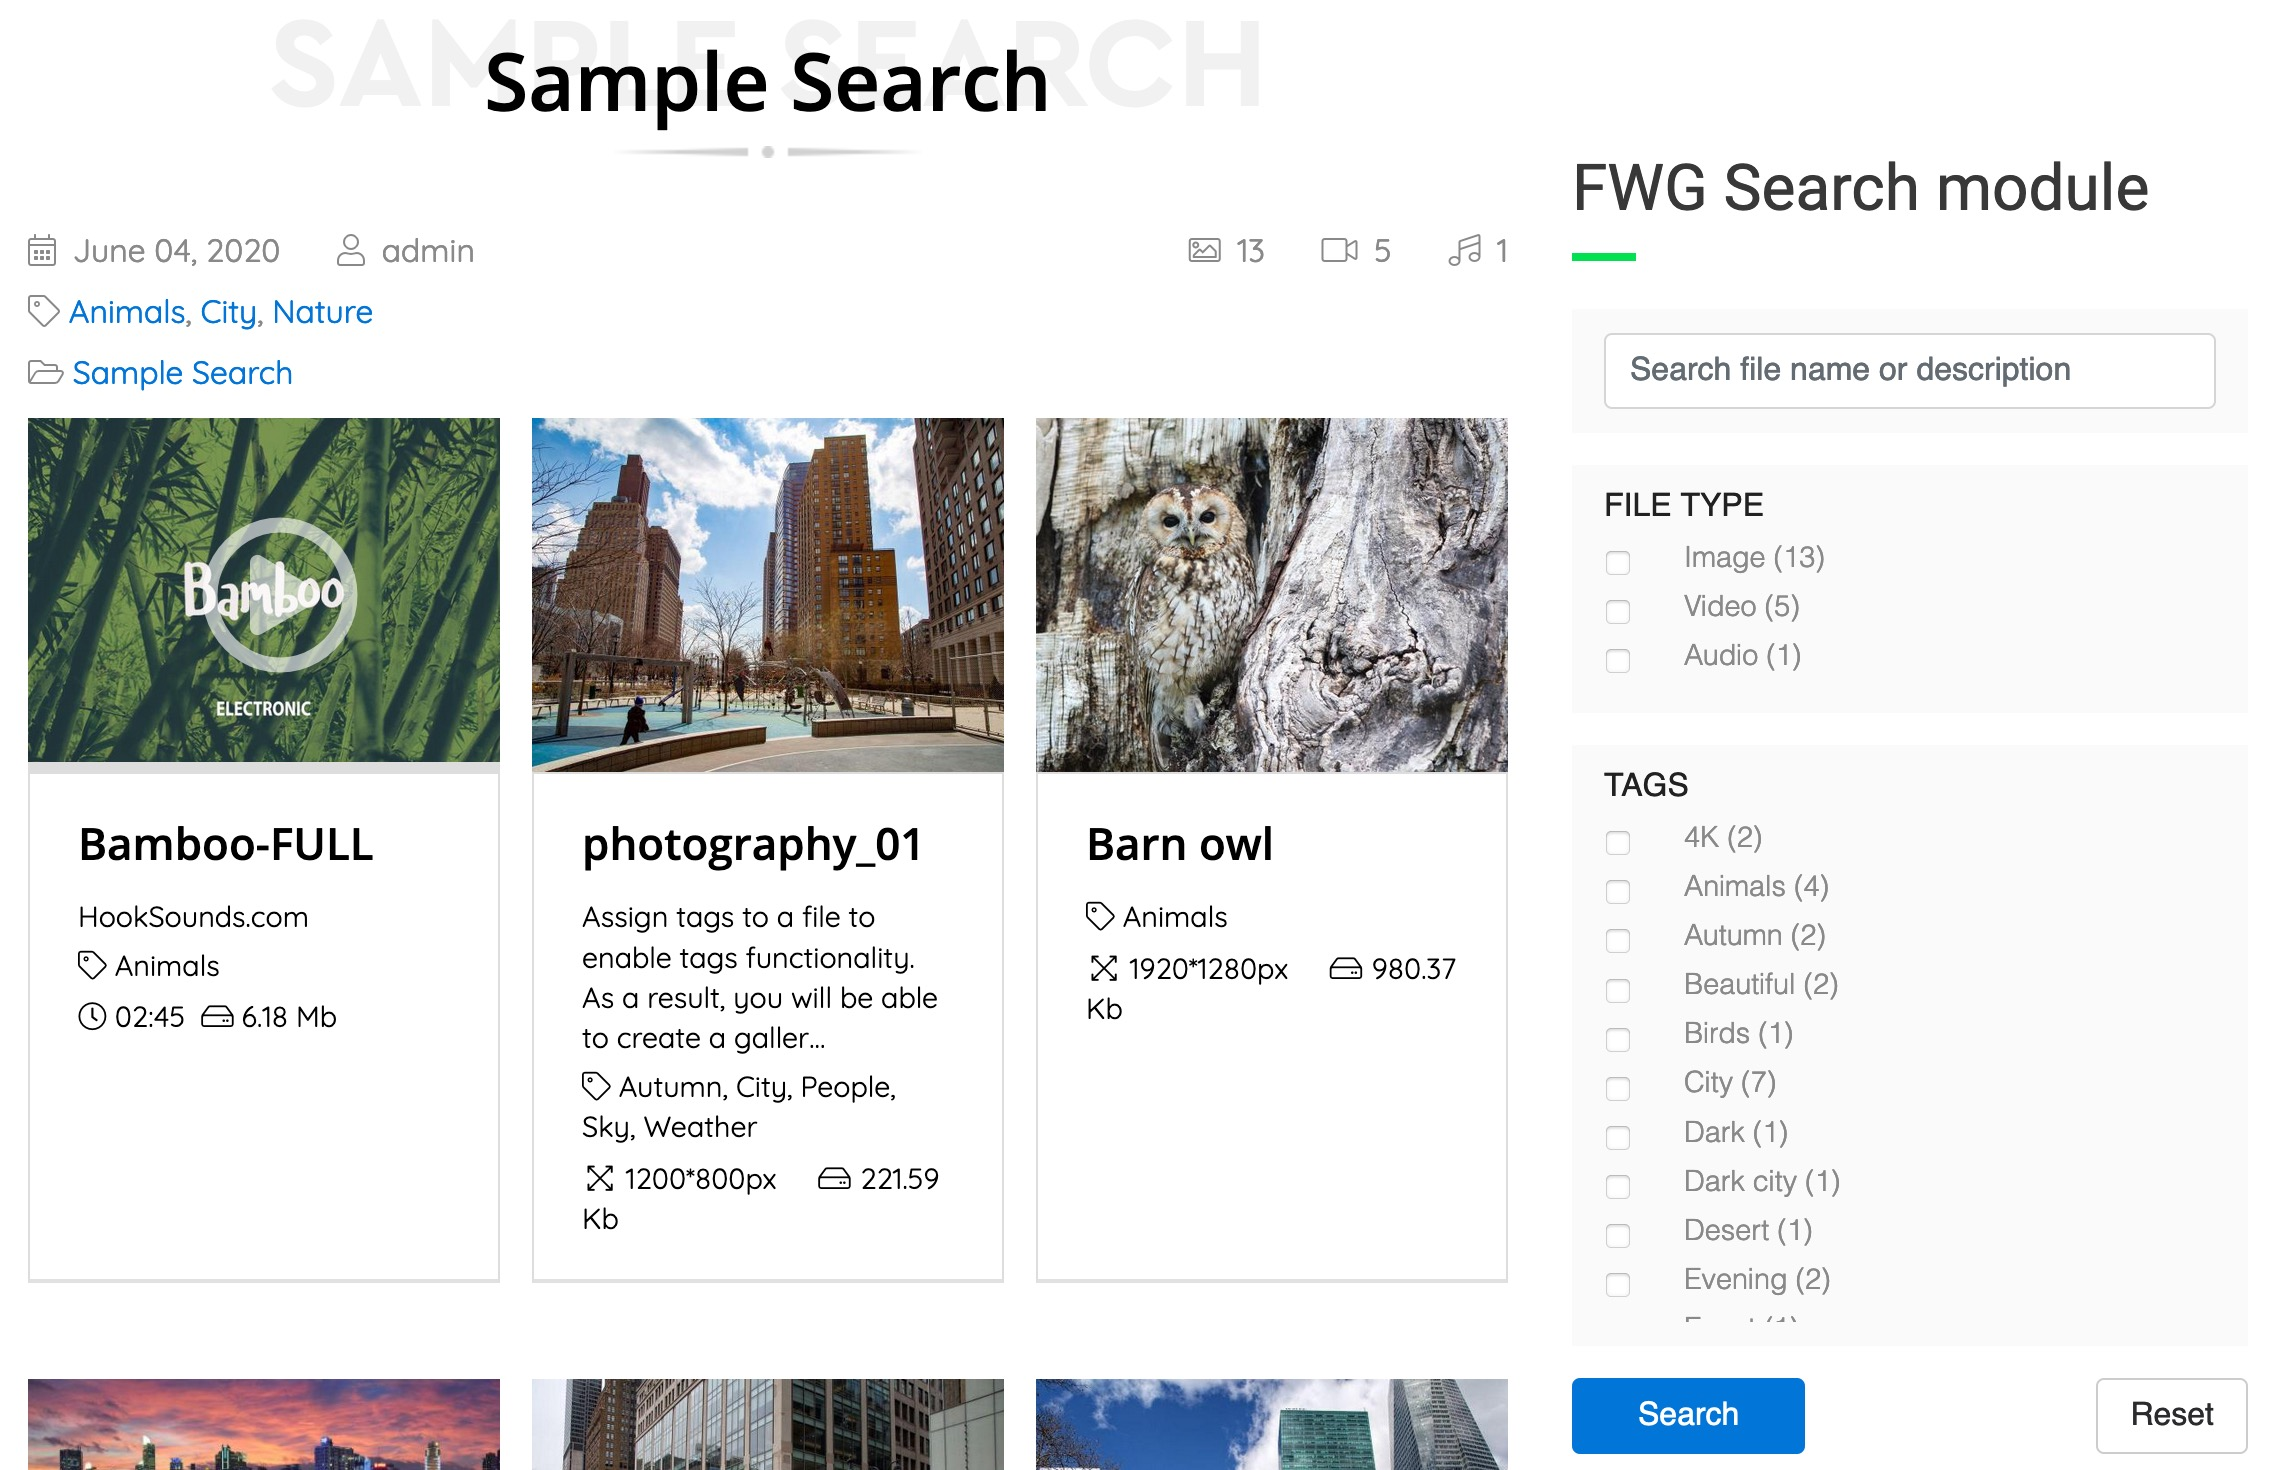 FWG Search & Filter